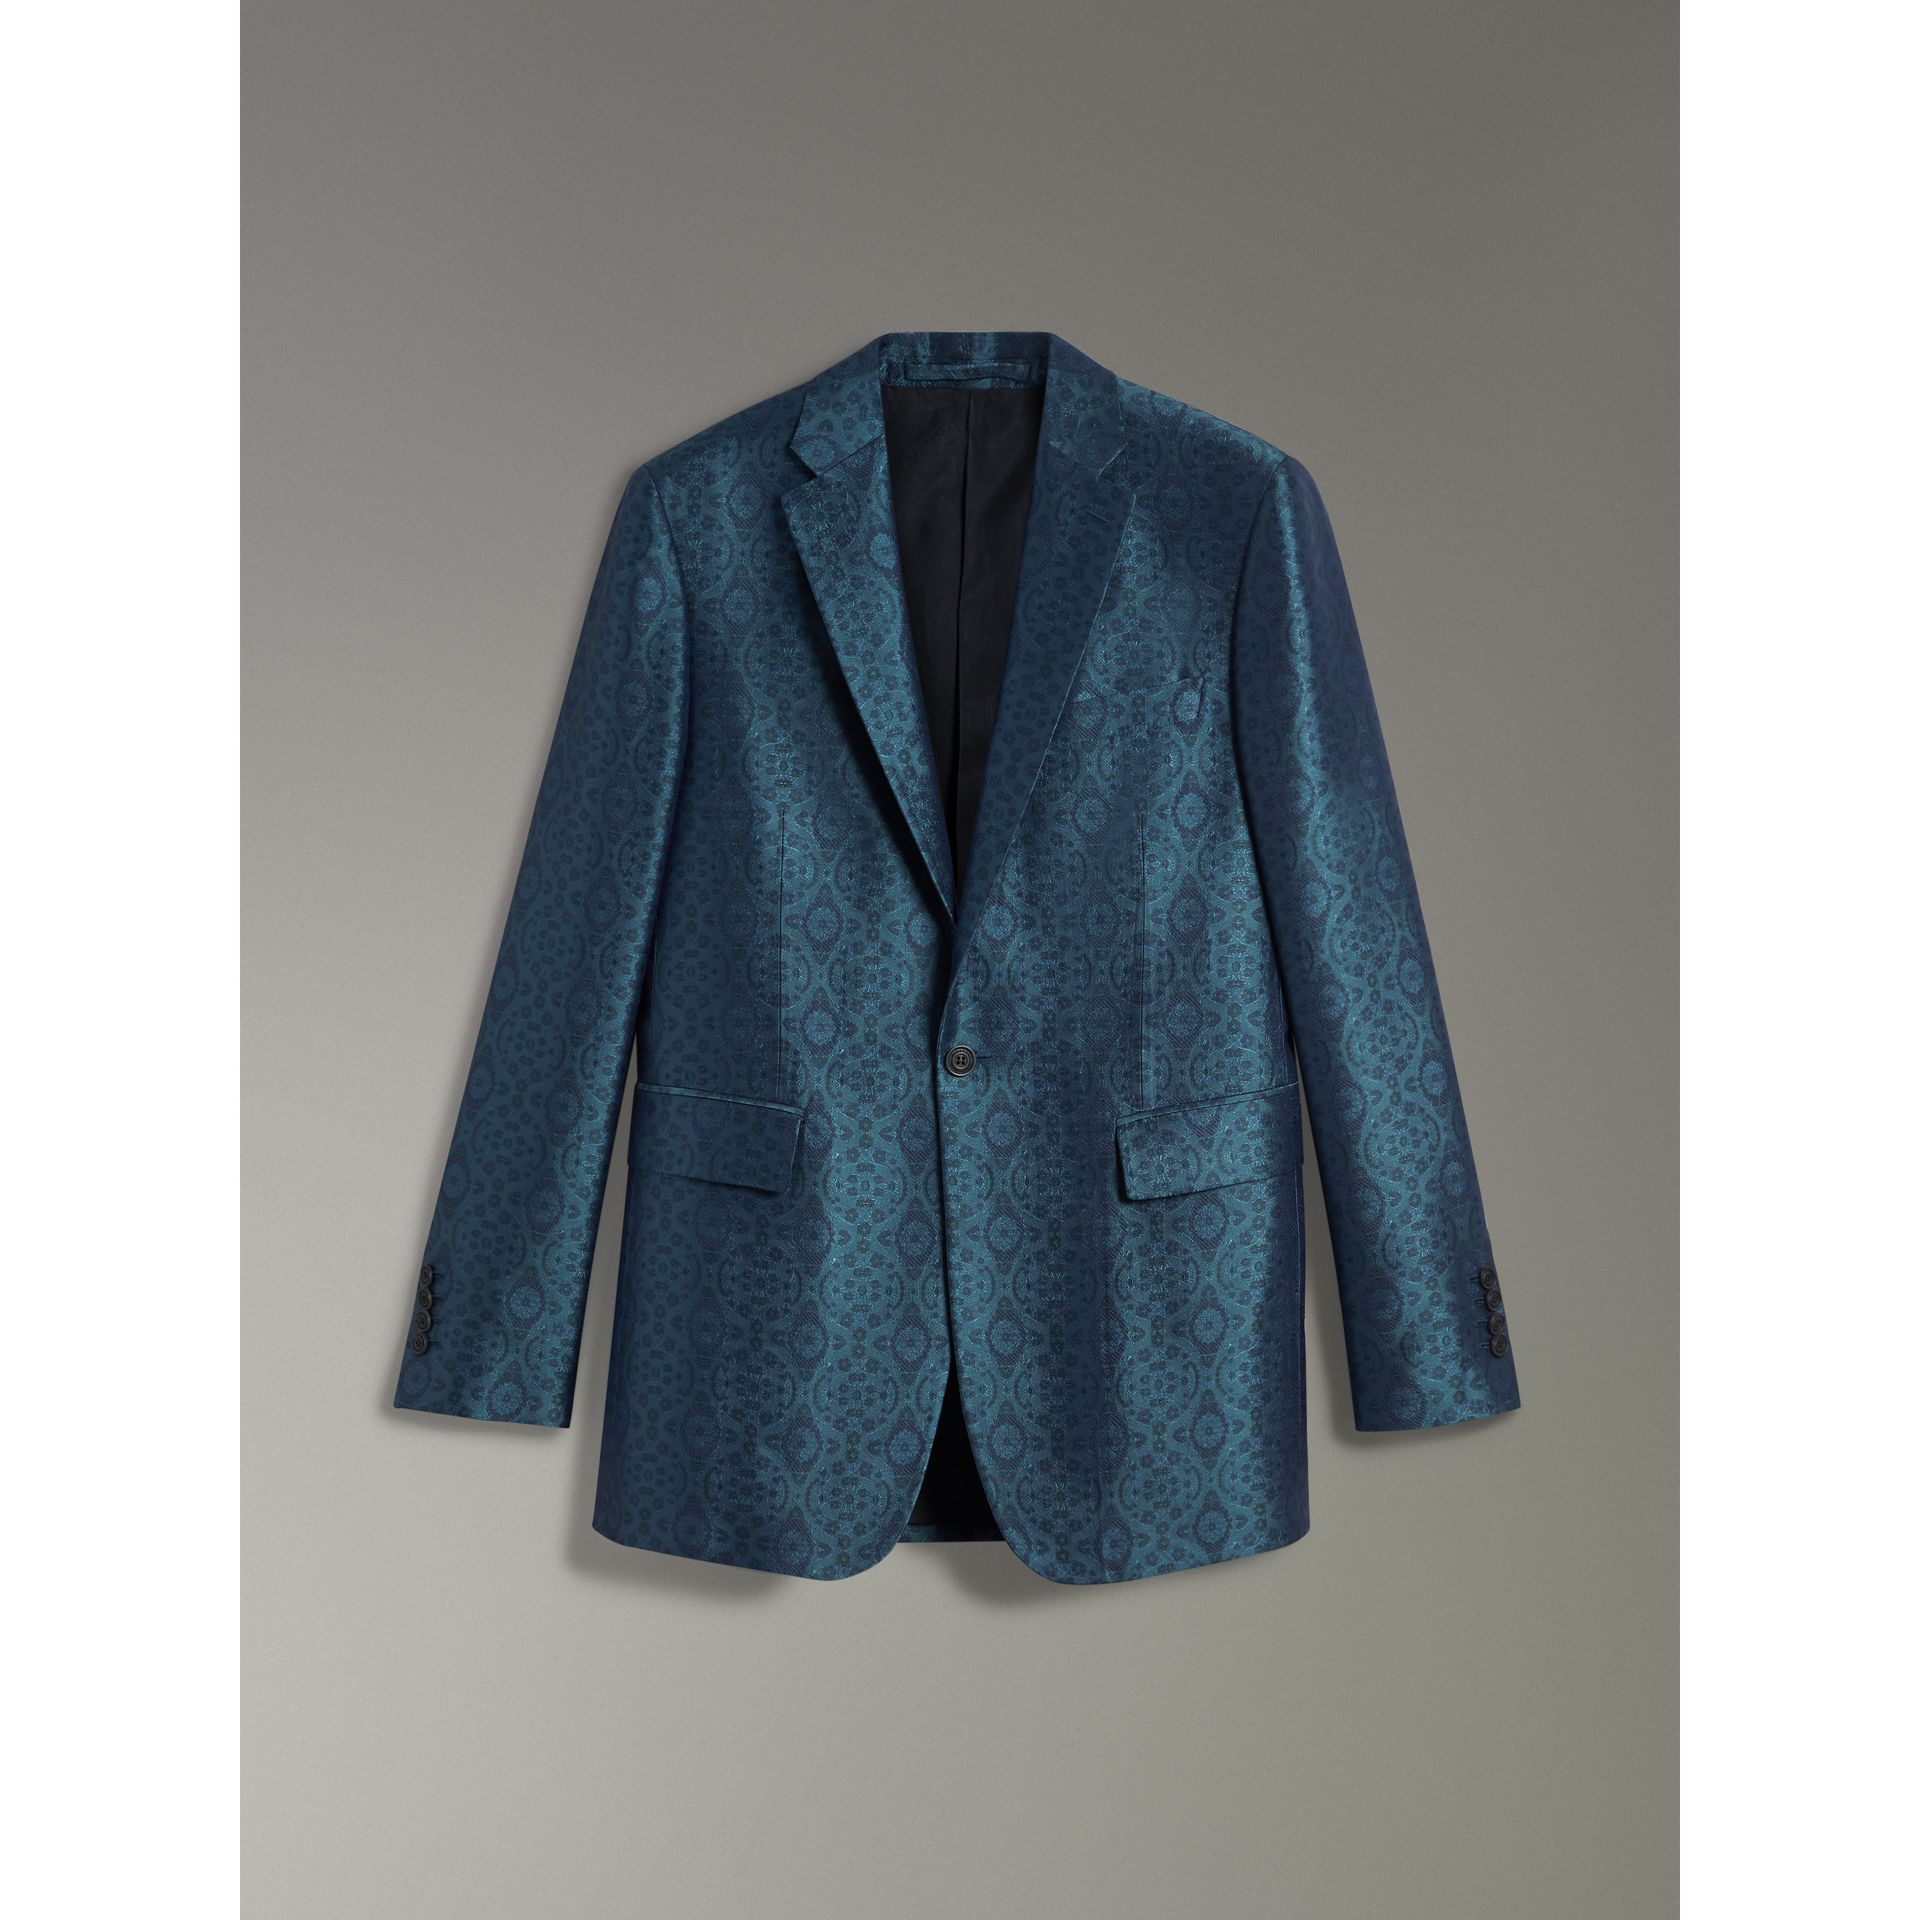 Soho Fit Geometric Silk Jacquard Suit in Dark Teal - Men | Burberry United Kingdom - gallery image 3